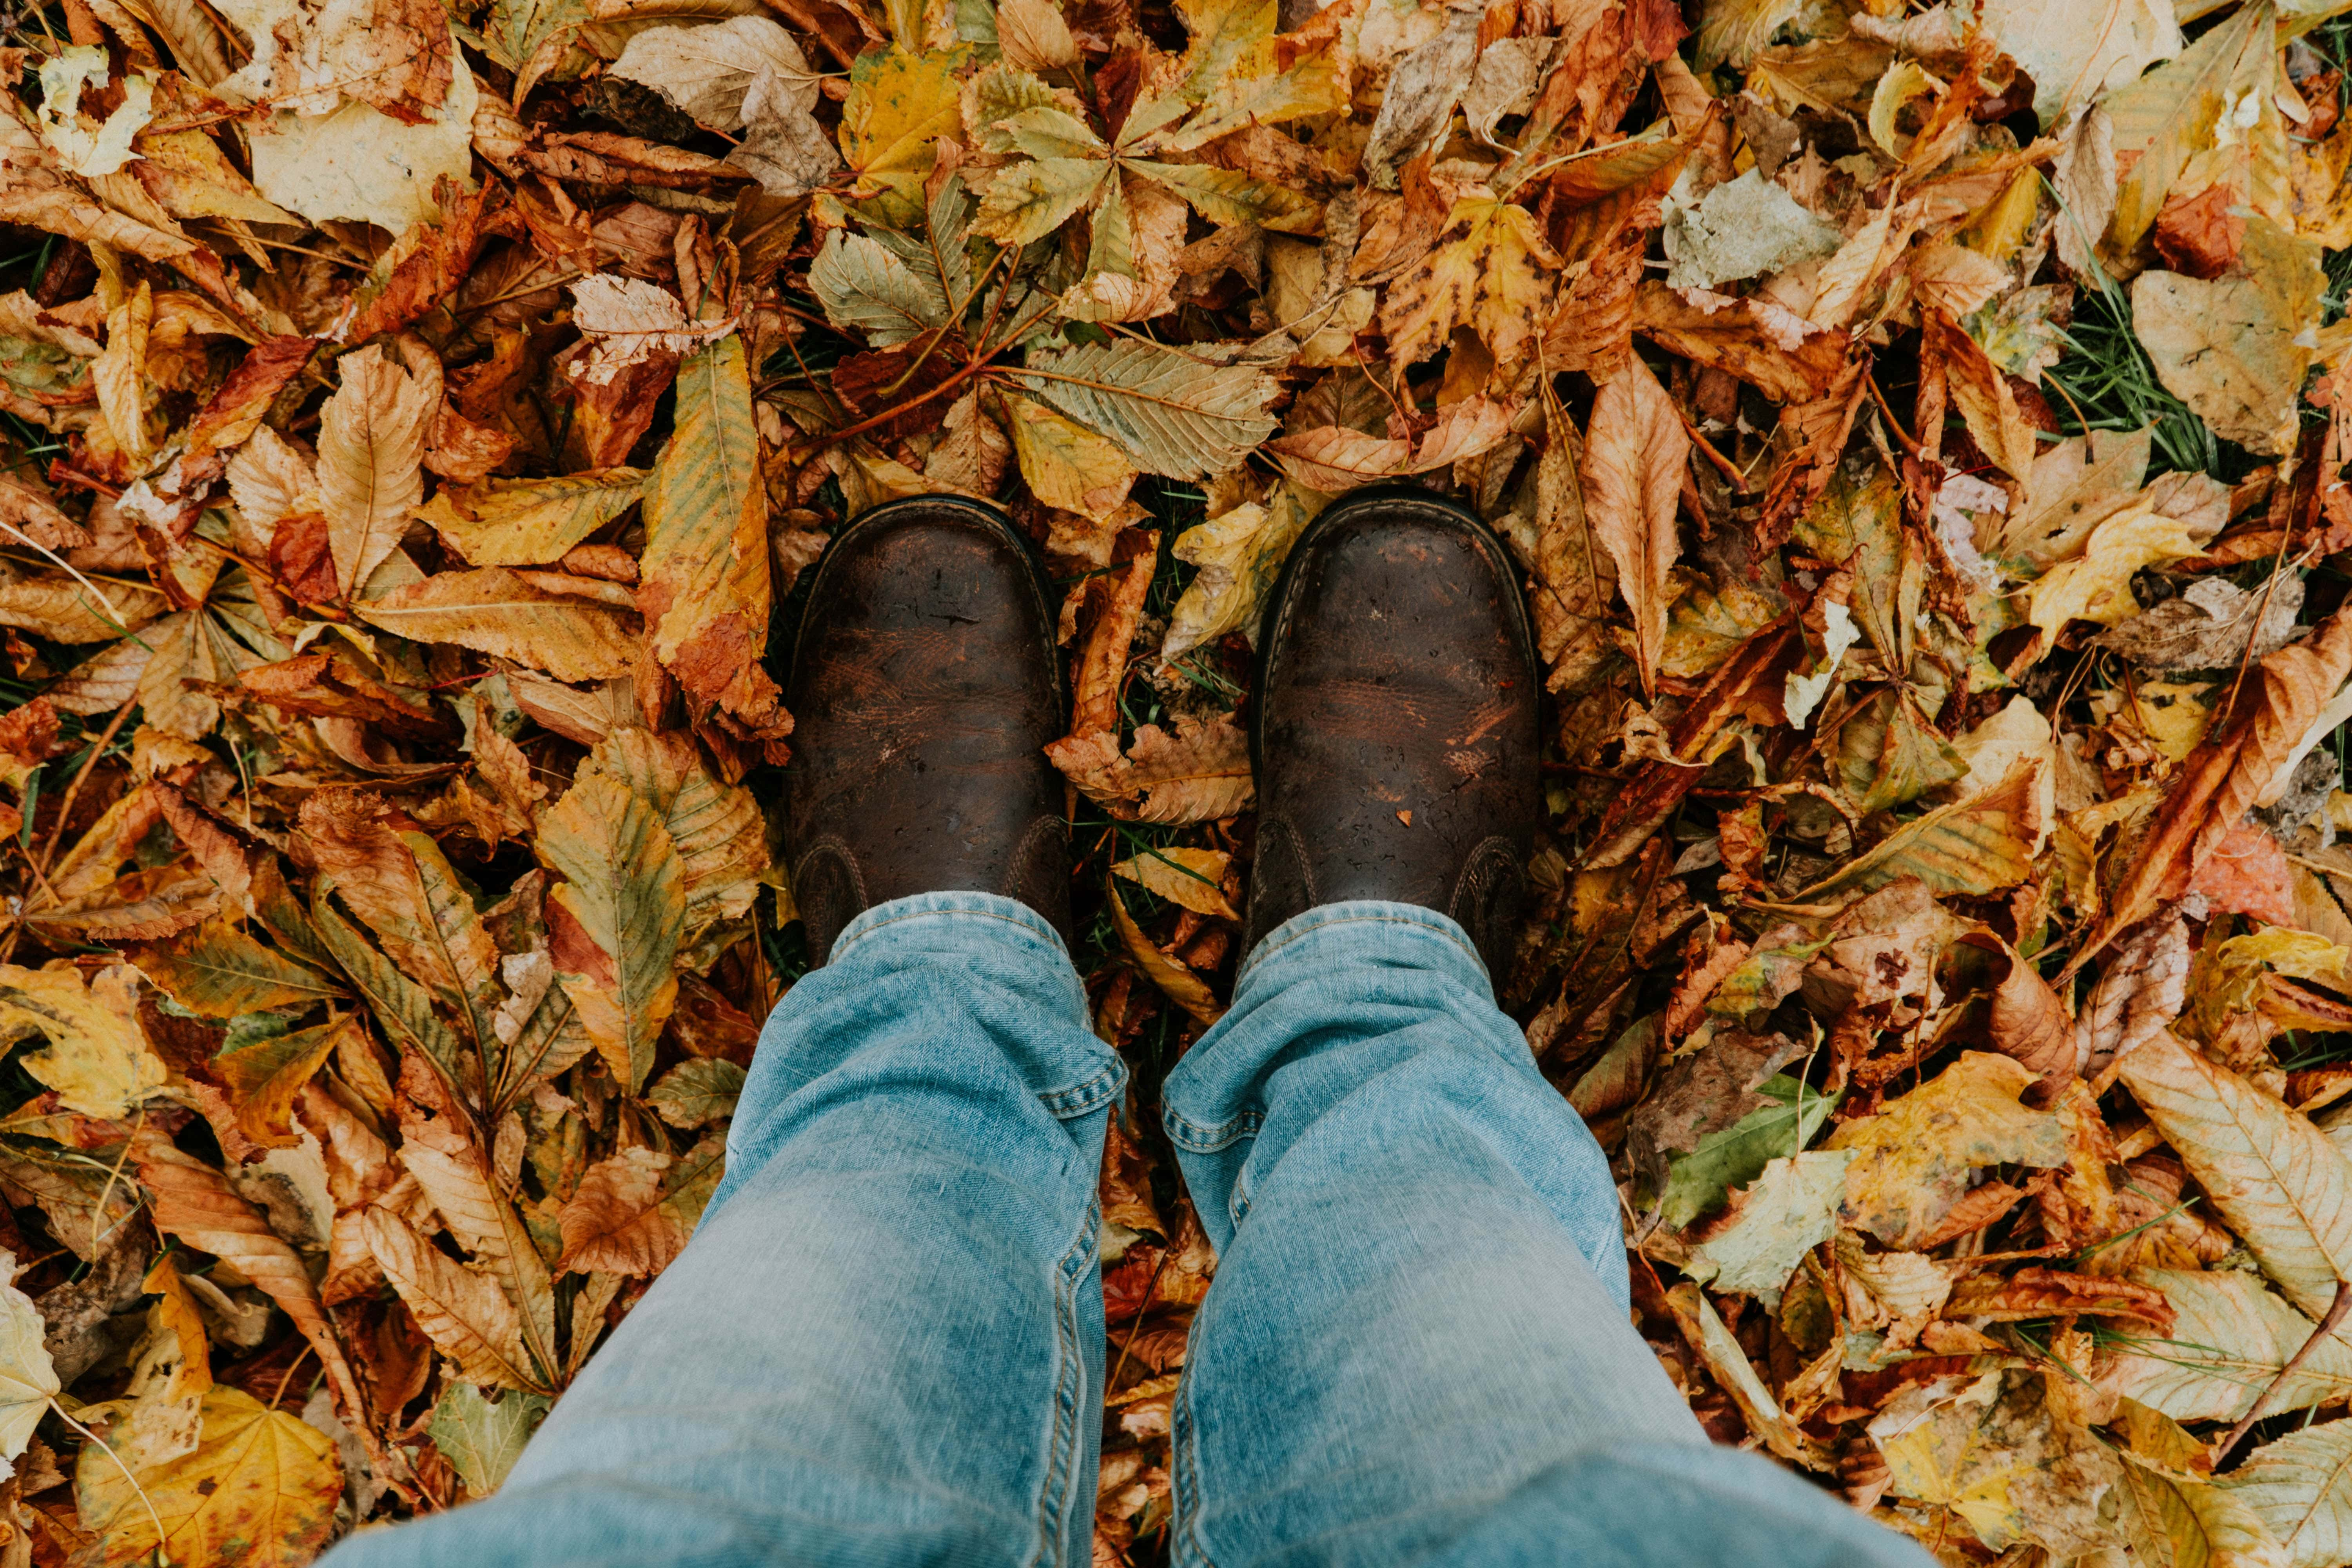 Easy Ways to Dispose of Leaves